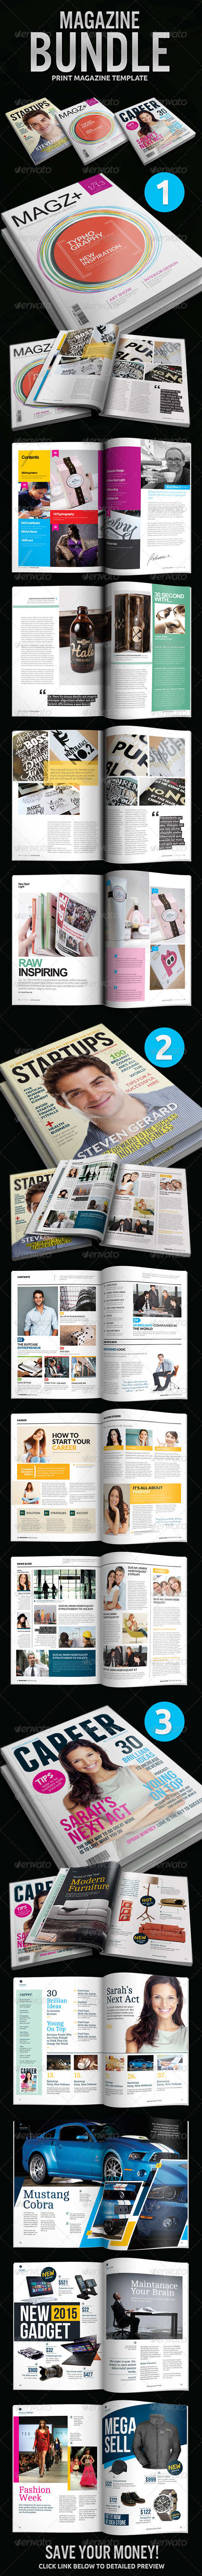 GraphicRiver Indesign Magazine Bundle 4900014